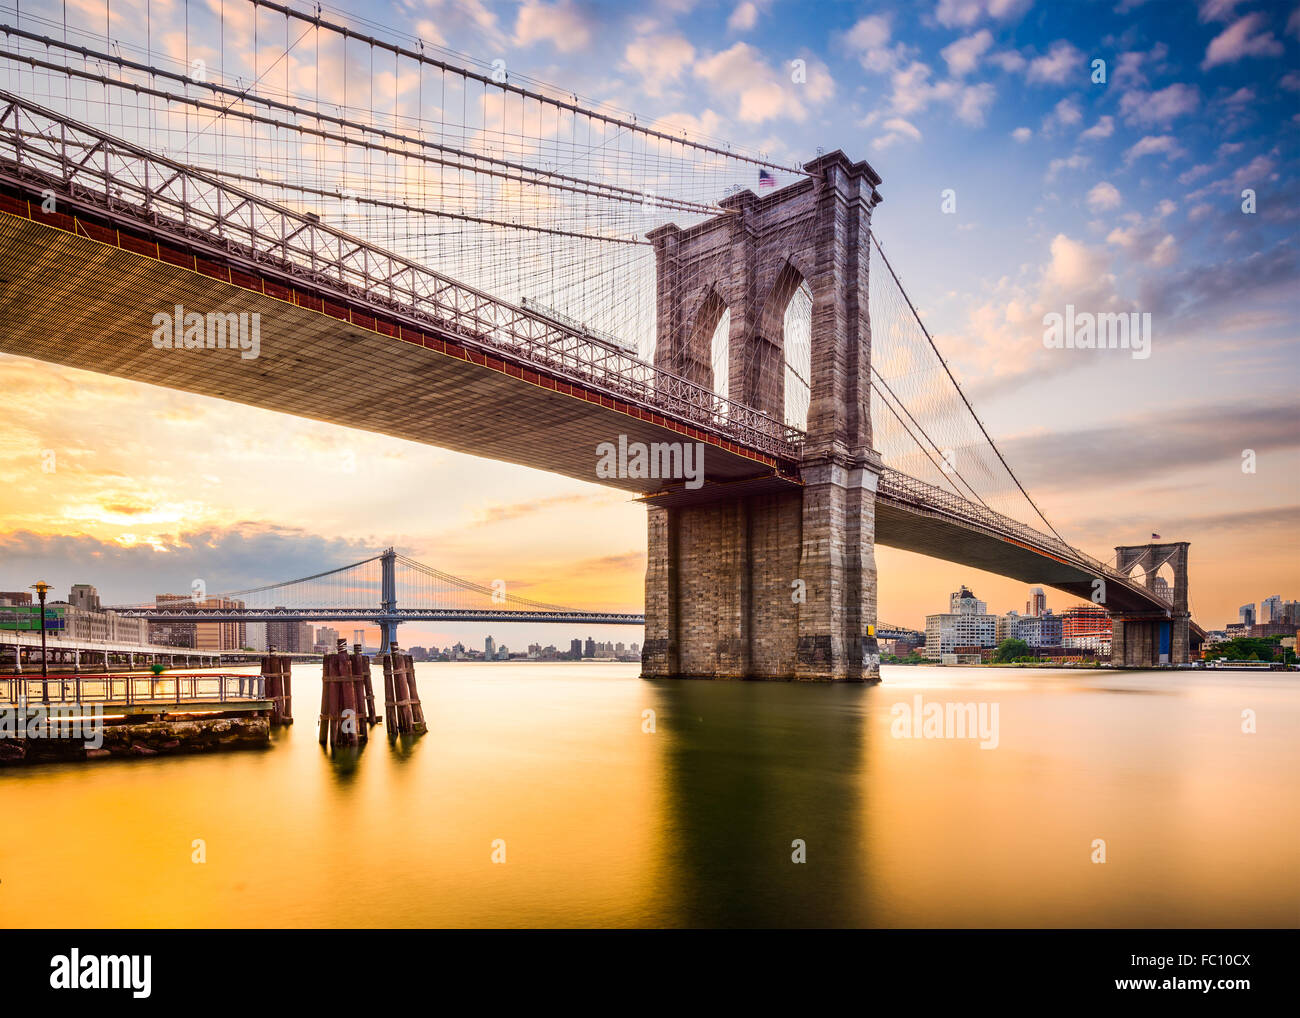 New York City, USA at the Brooklyn Bridge and East River. - Stock Image